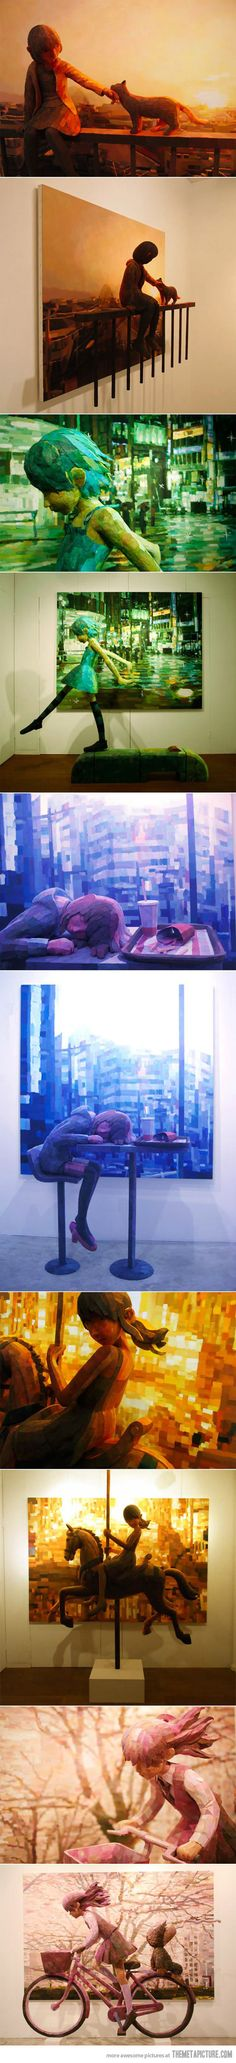 Shintaro Ohata combines sculpture and canvas in his art - this is ridiculously awesome